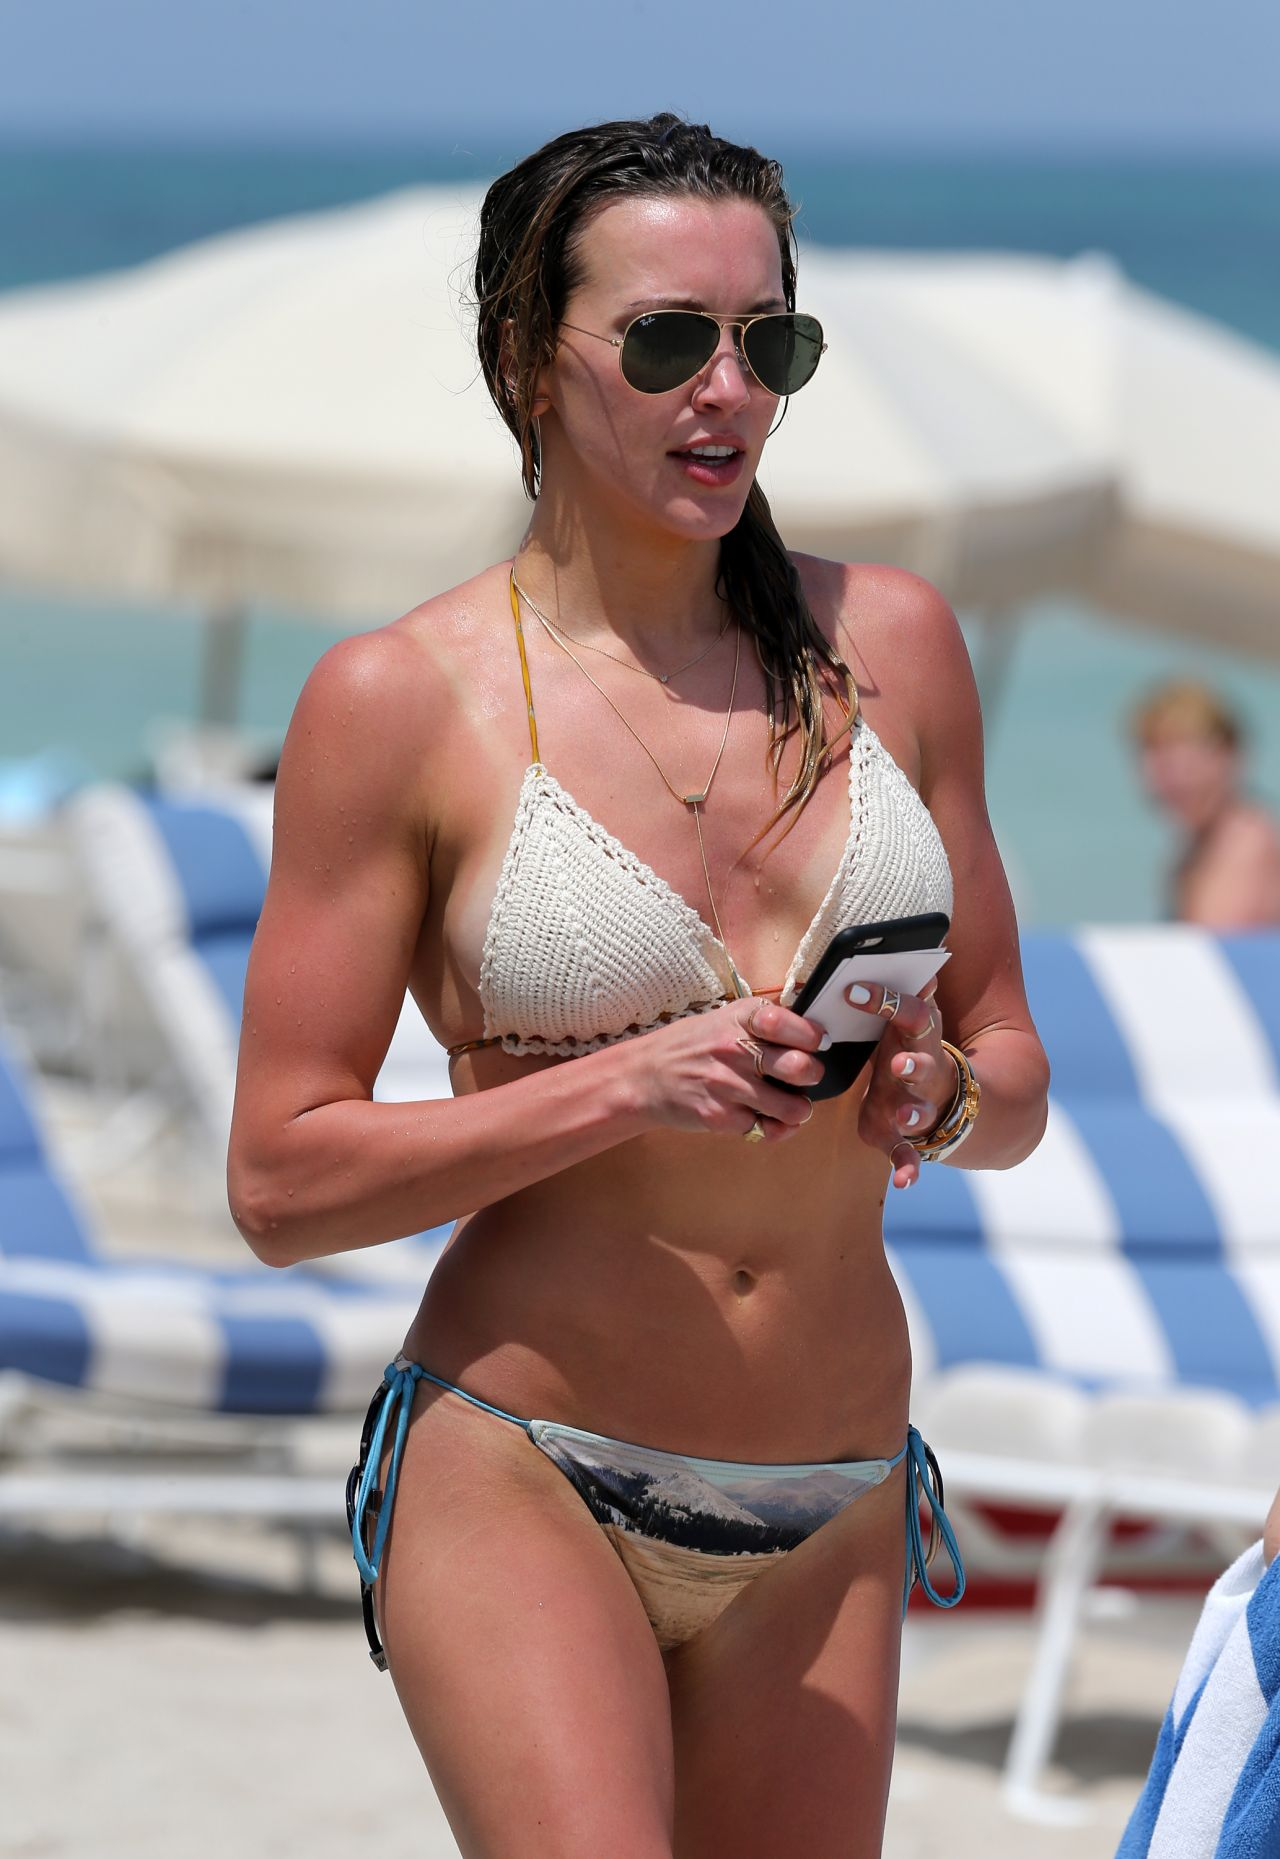 Legal katie cassidy bikini pics pussy gallery suicide